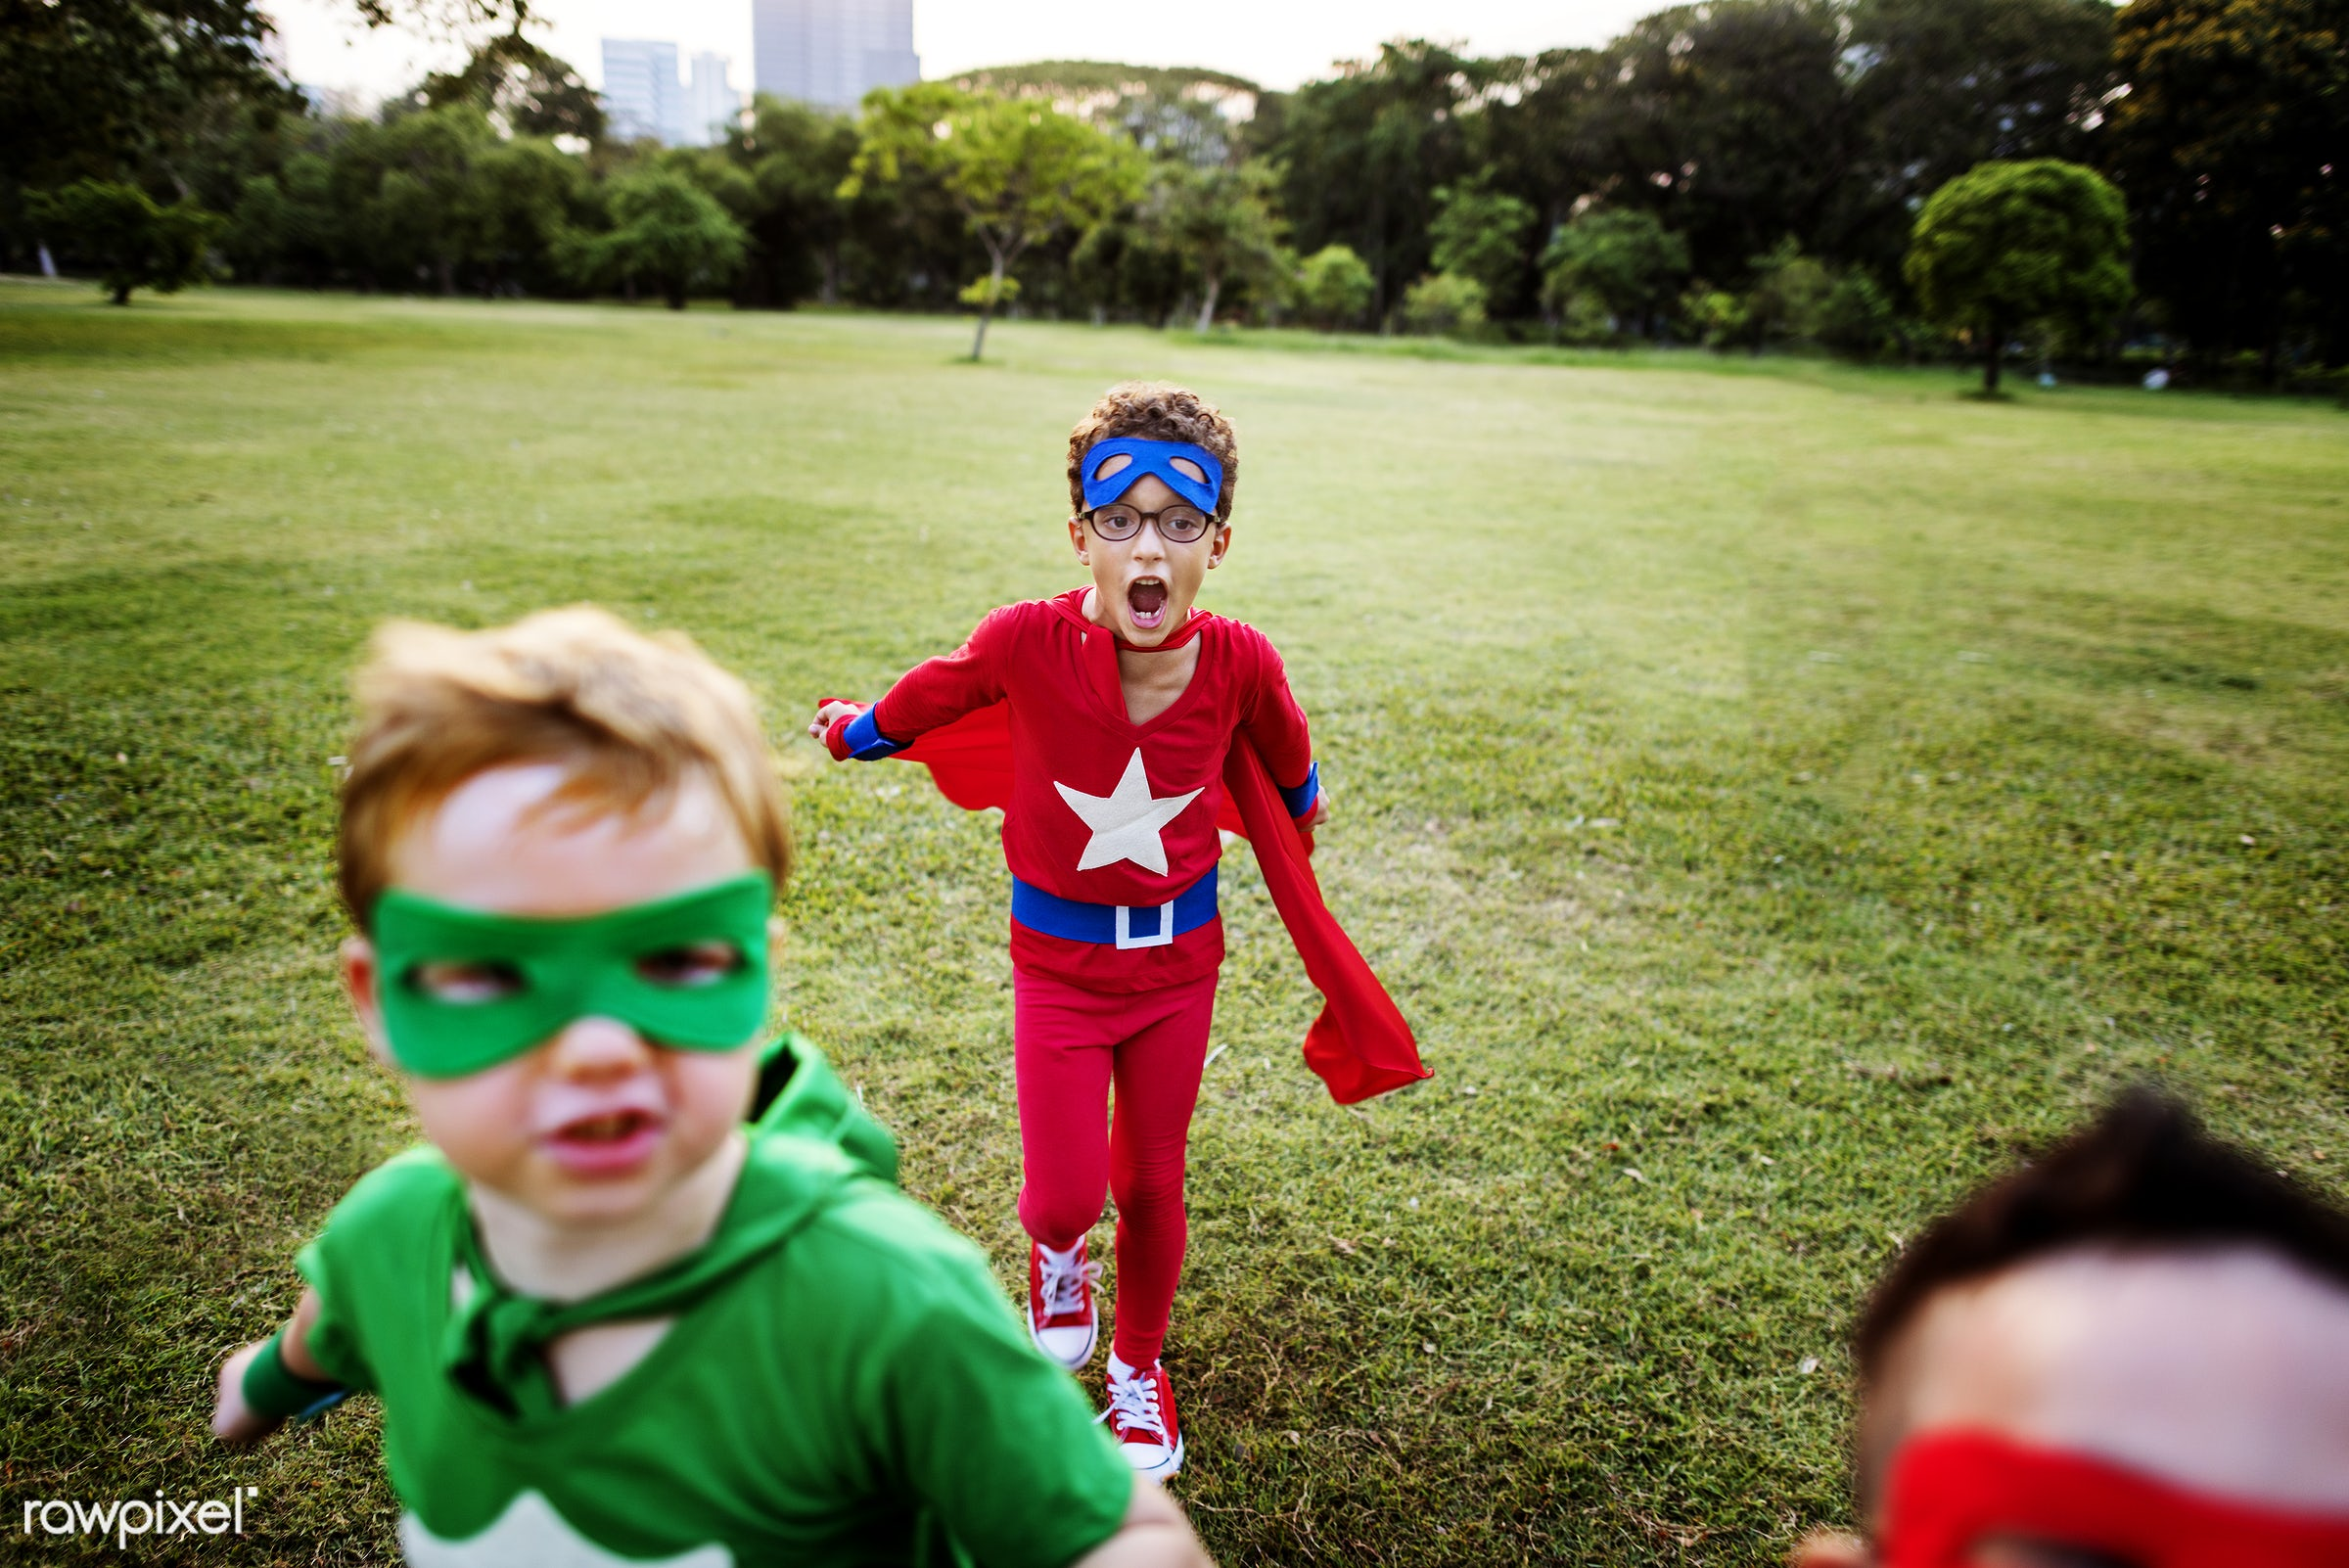 Superhero kids with superpowers - adorable, african descent, asian ethnicity, aspiration, boys, cape, cheerful, child,...